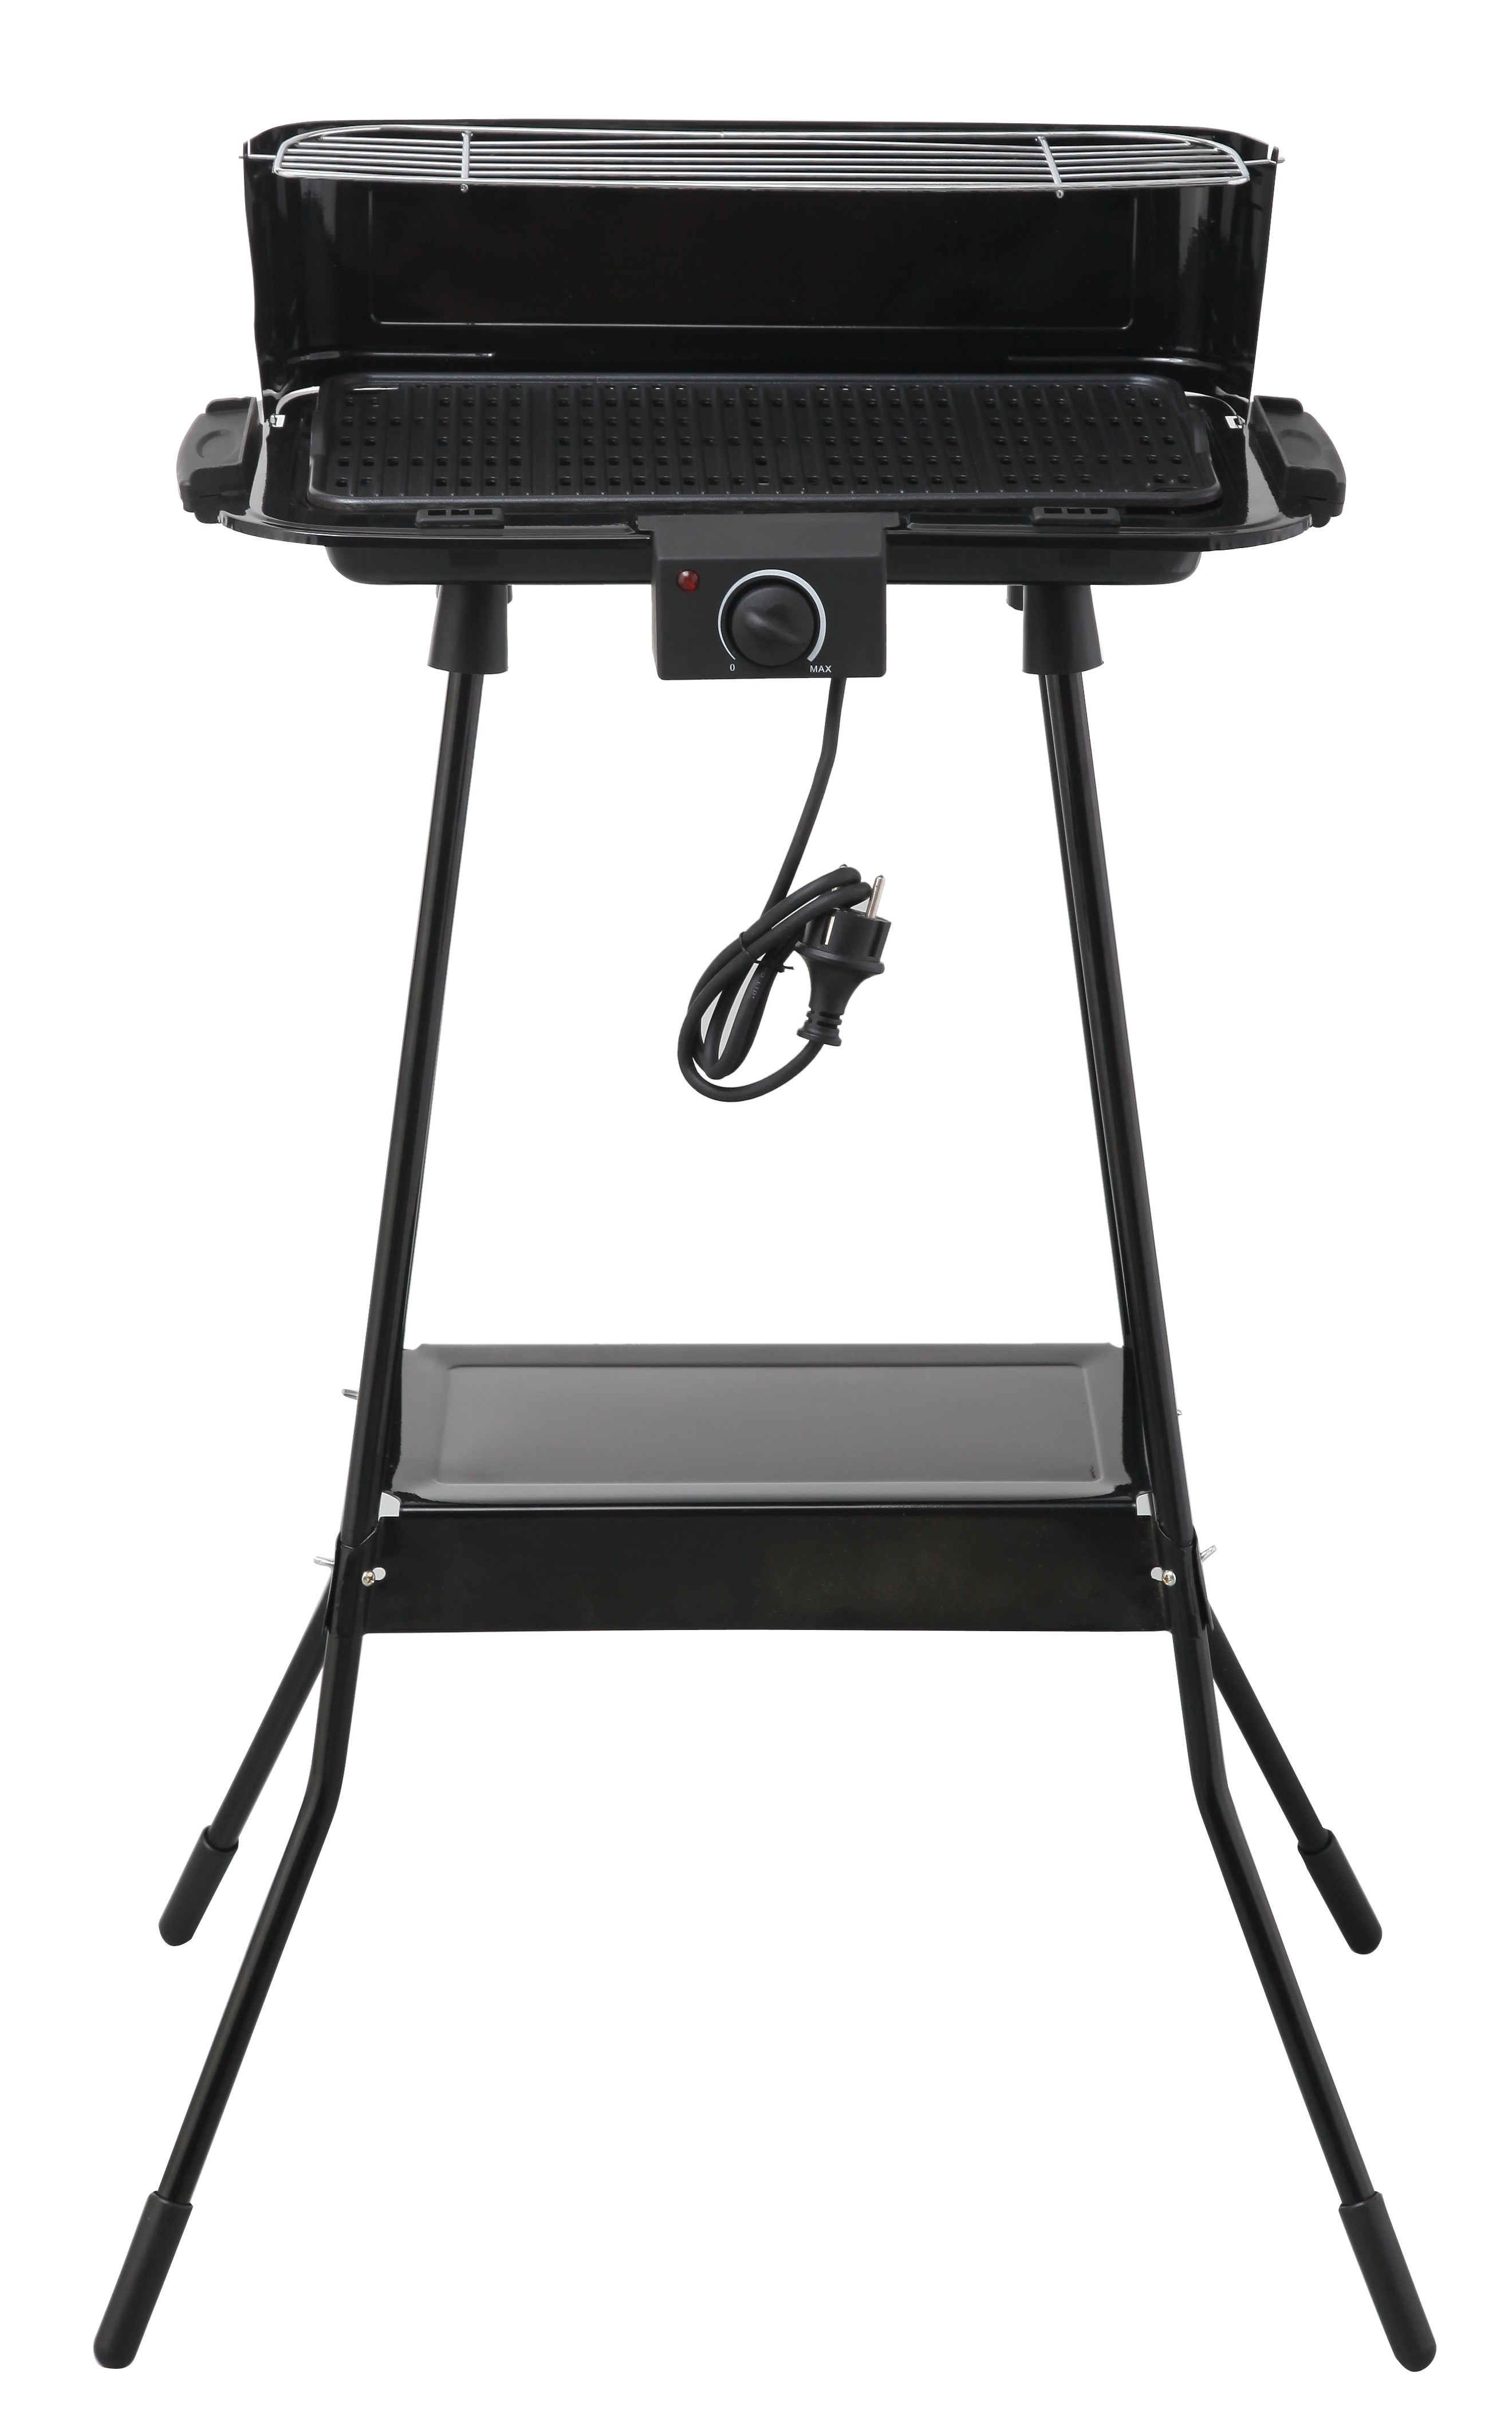 elektrogrill standgrill test tepro elektrogrill brownsville standgrill test severin pg 8523. Black Bedroom Furniture Sets. Home Design Ideas